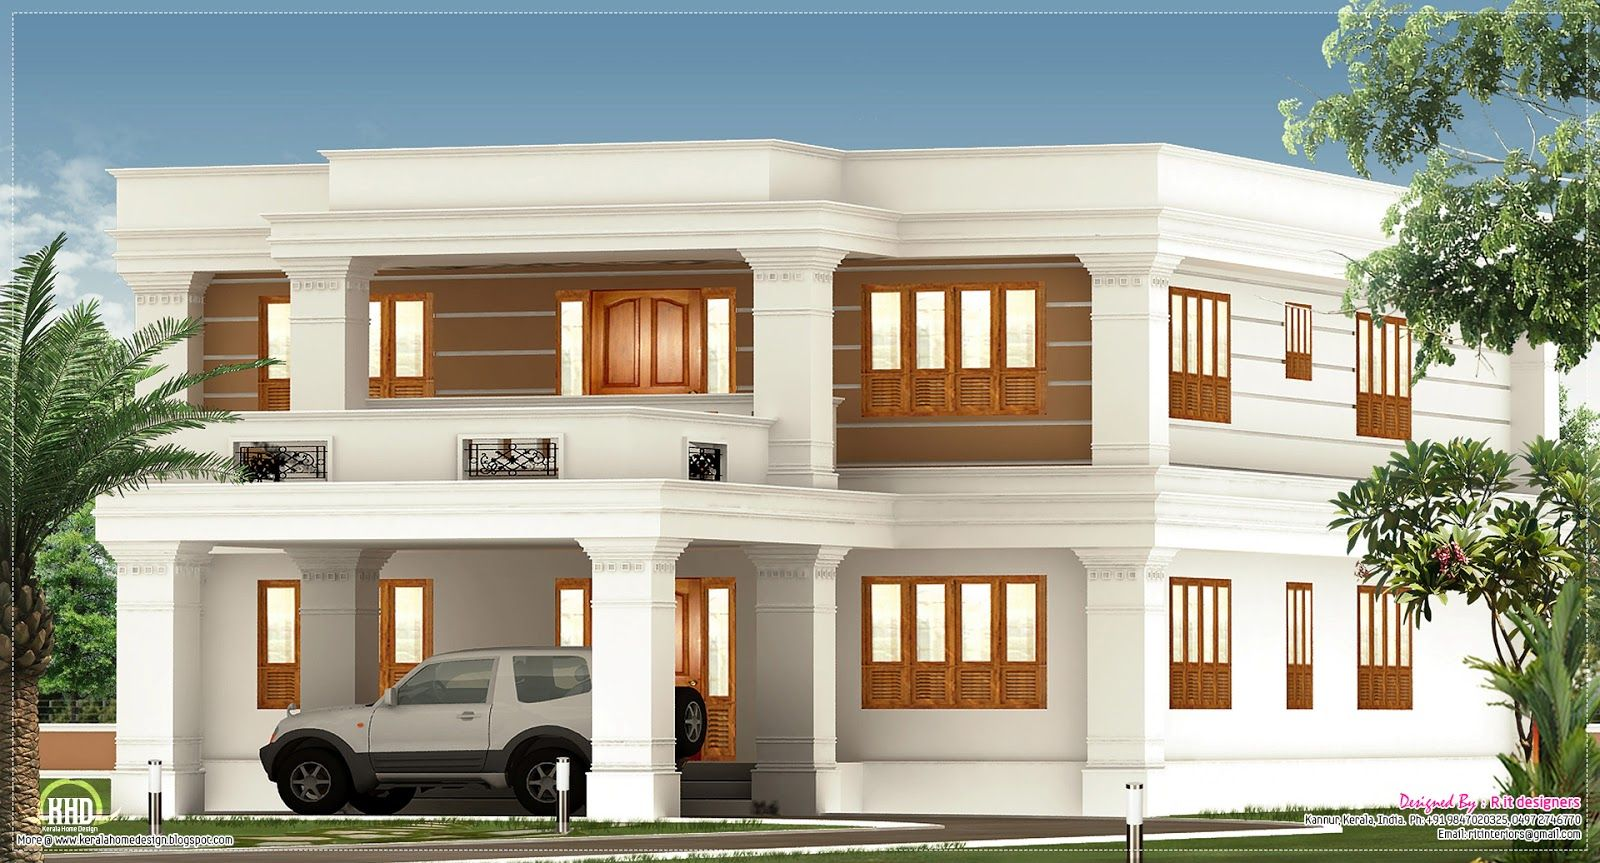 Flat roof villa exterior home ideas house design plans photos roof design plans hip roof garage